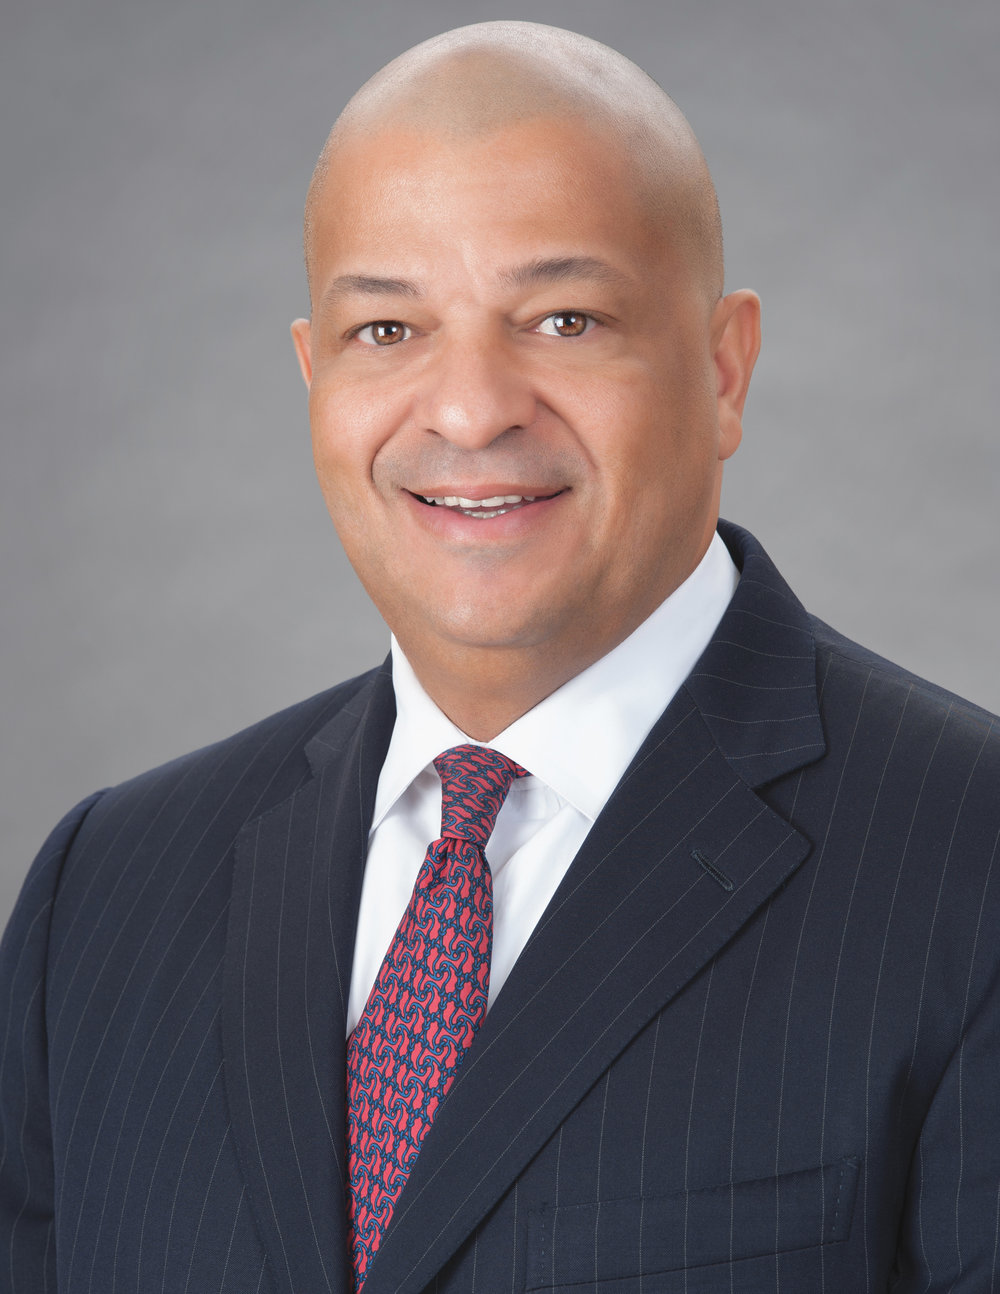 Company CEO Alfred Liggins III is an equal partner in the journey of this black multimedia and entertainment enterprise.